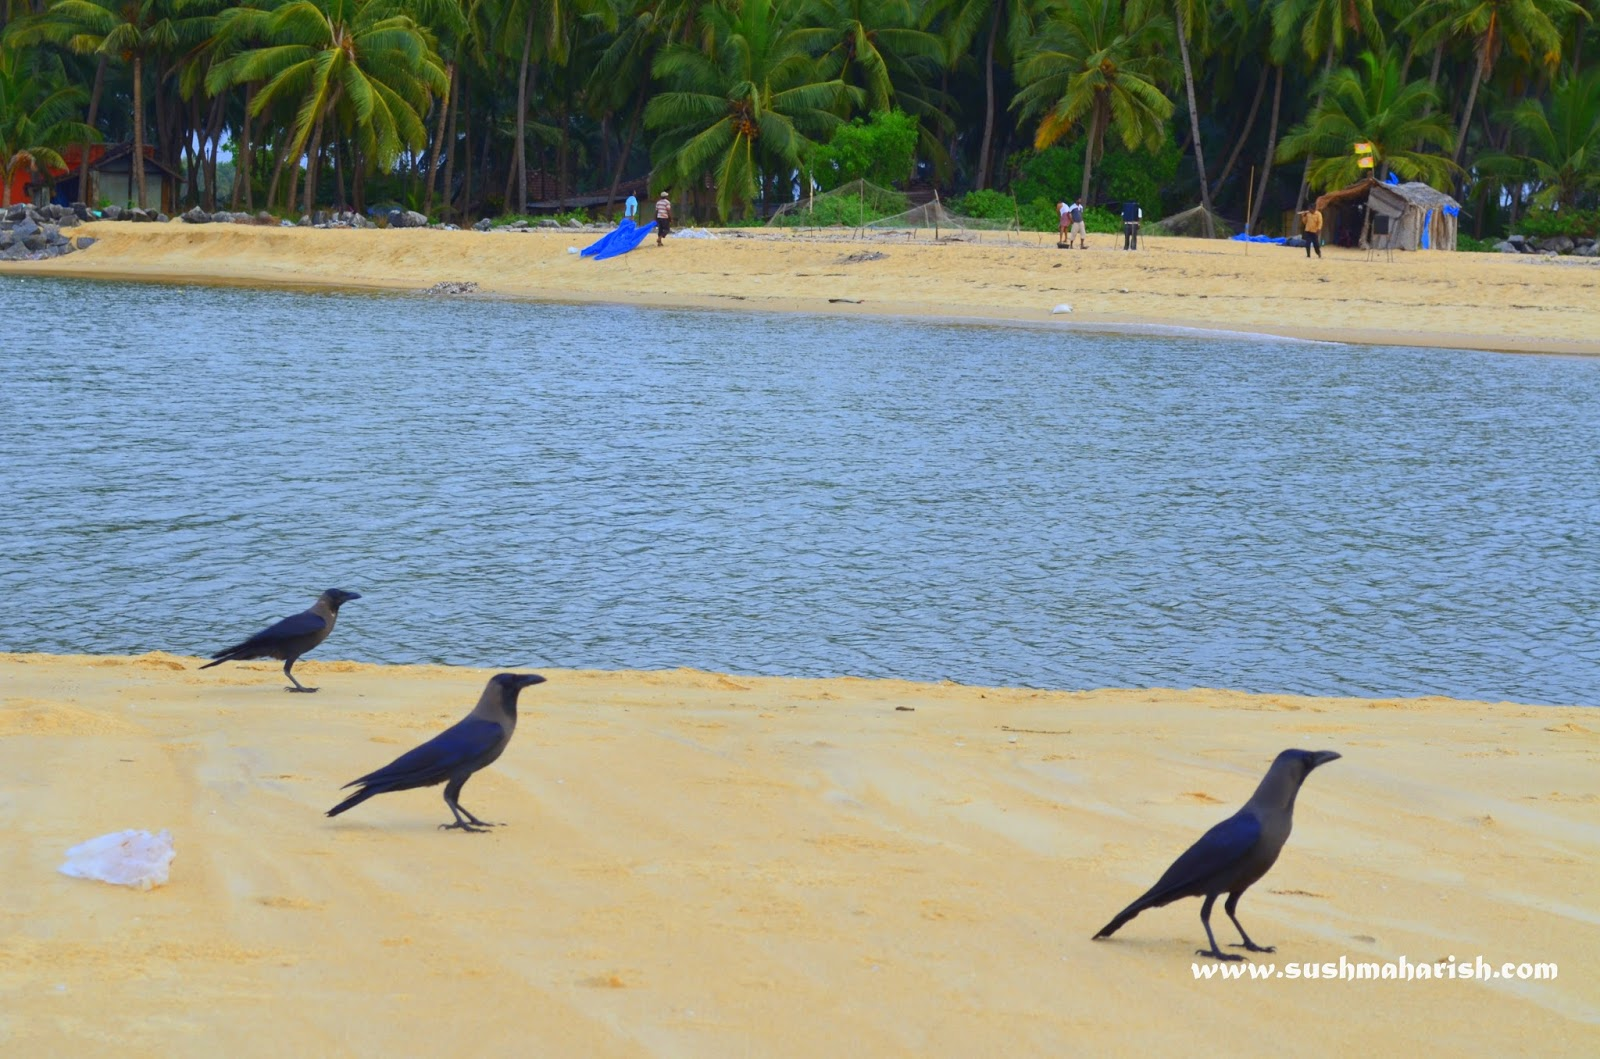 Two Best Beaches Of Udupi - Bengre The Silent Estuary And The Swarming Malpe 4